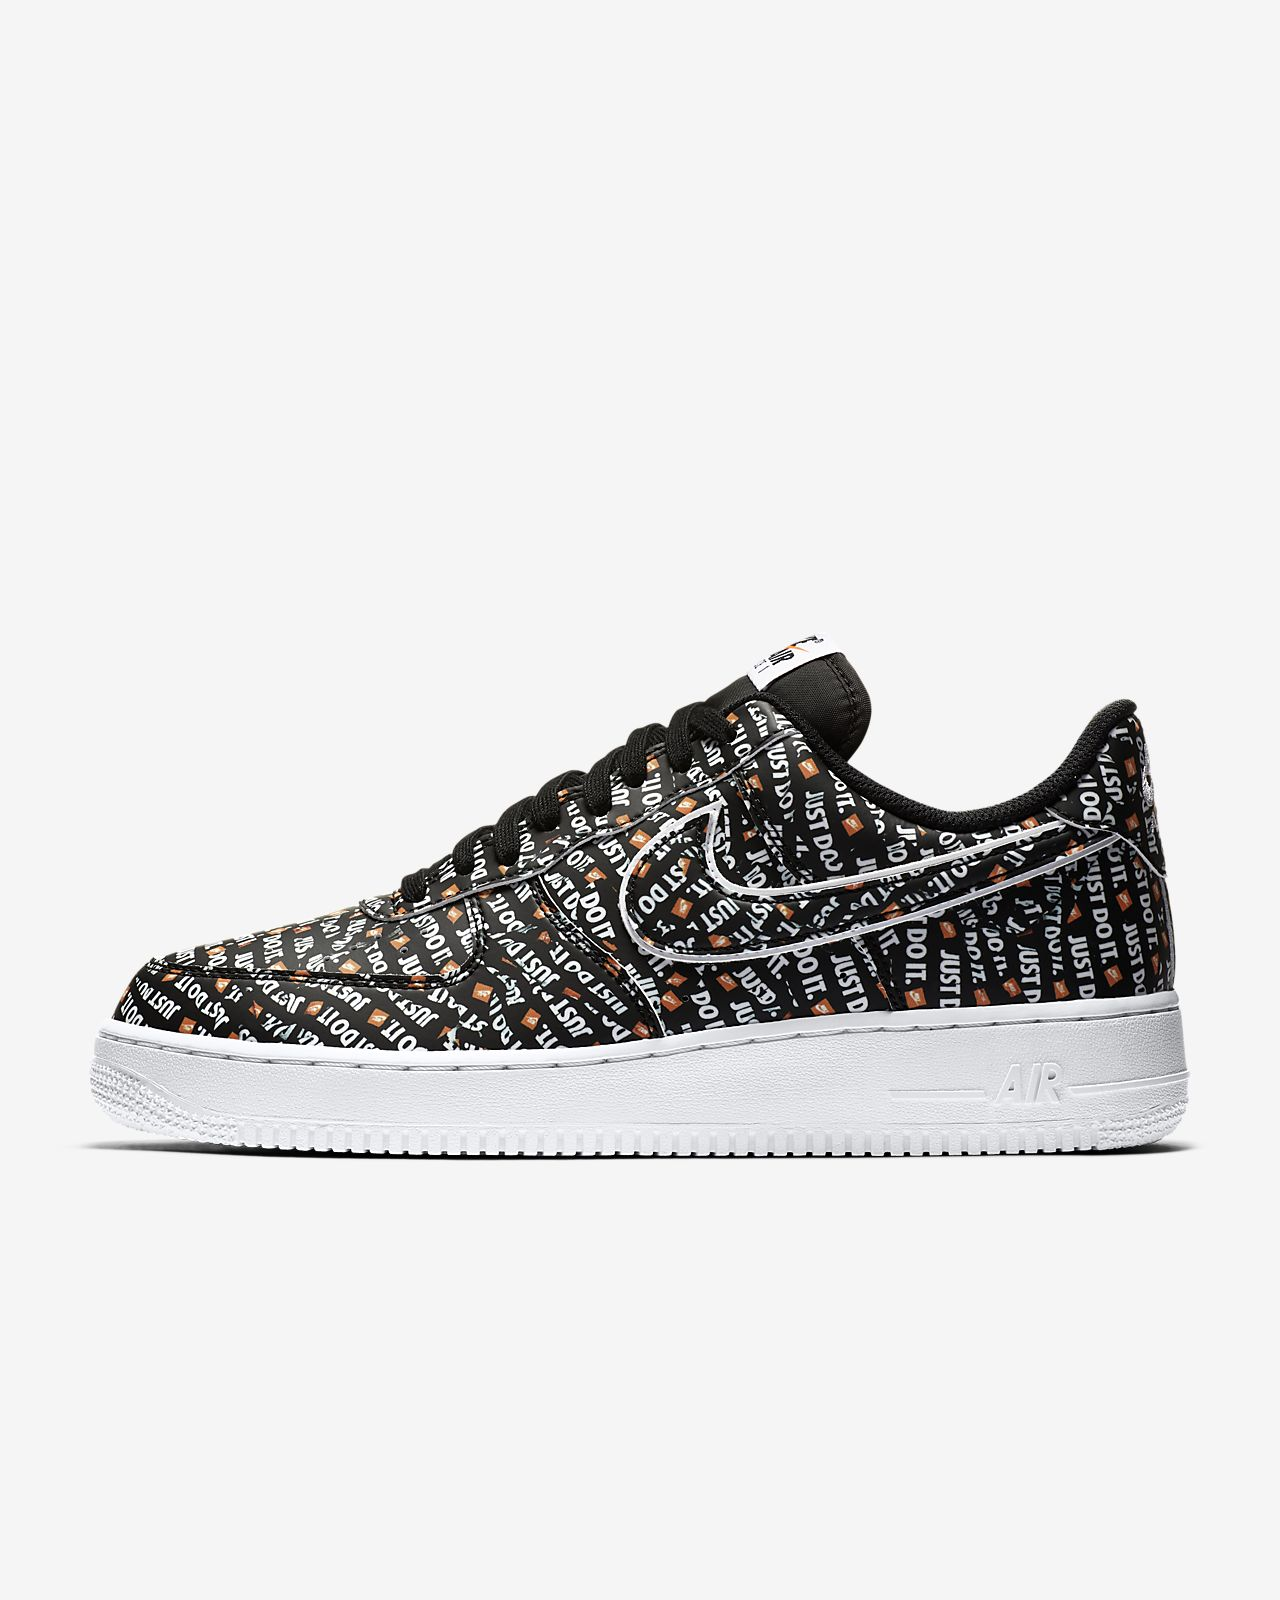 on sale 8a288 2368a Nike Air Force 1 07 LV8 JDI